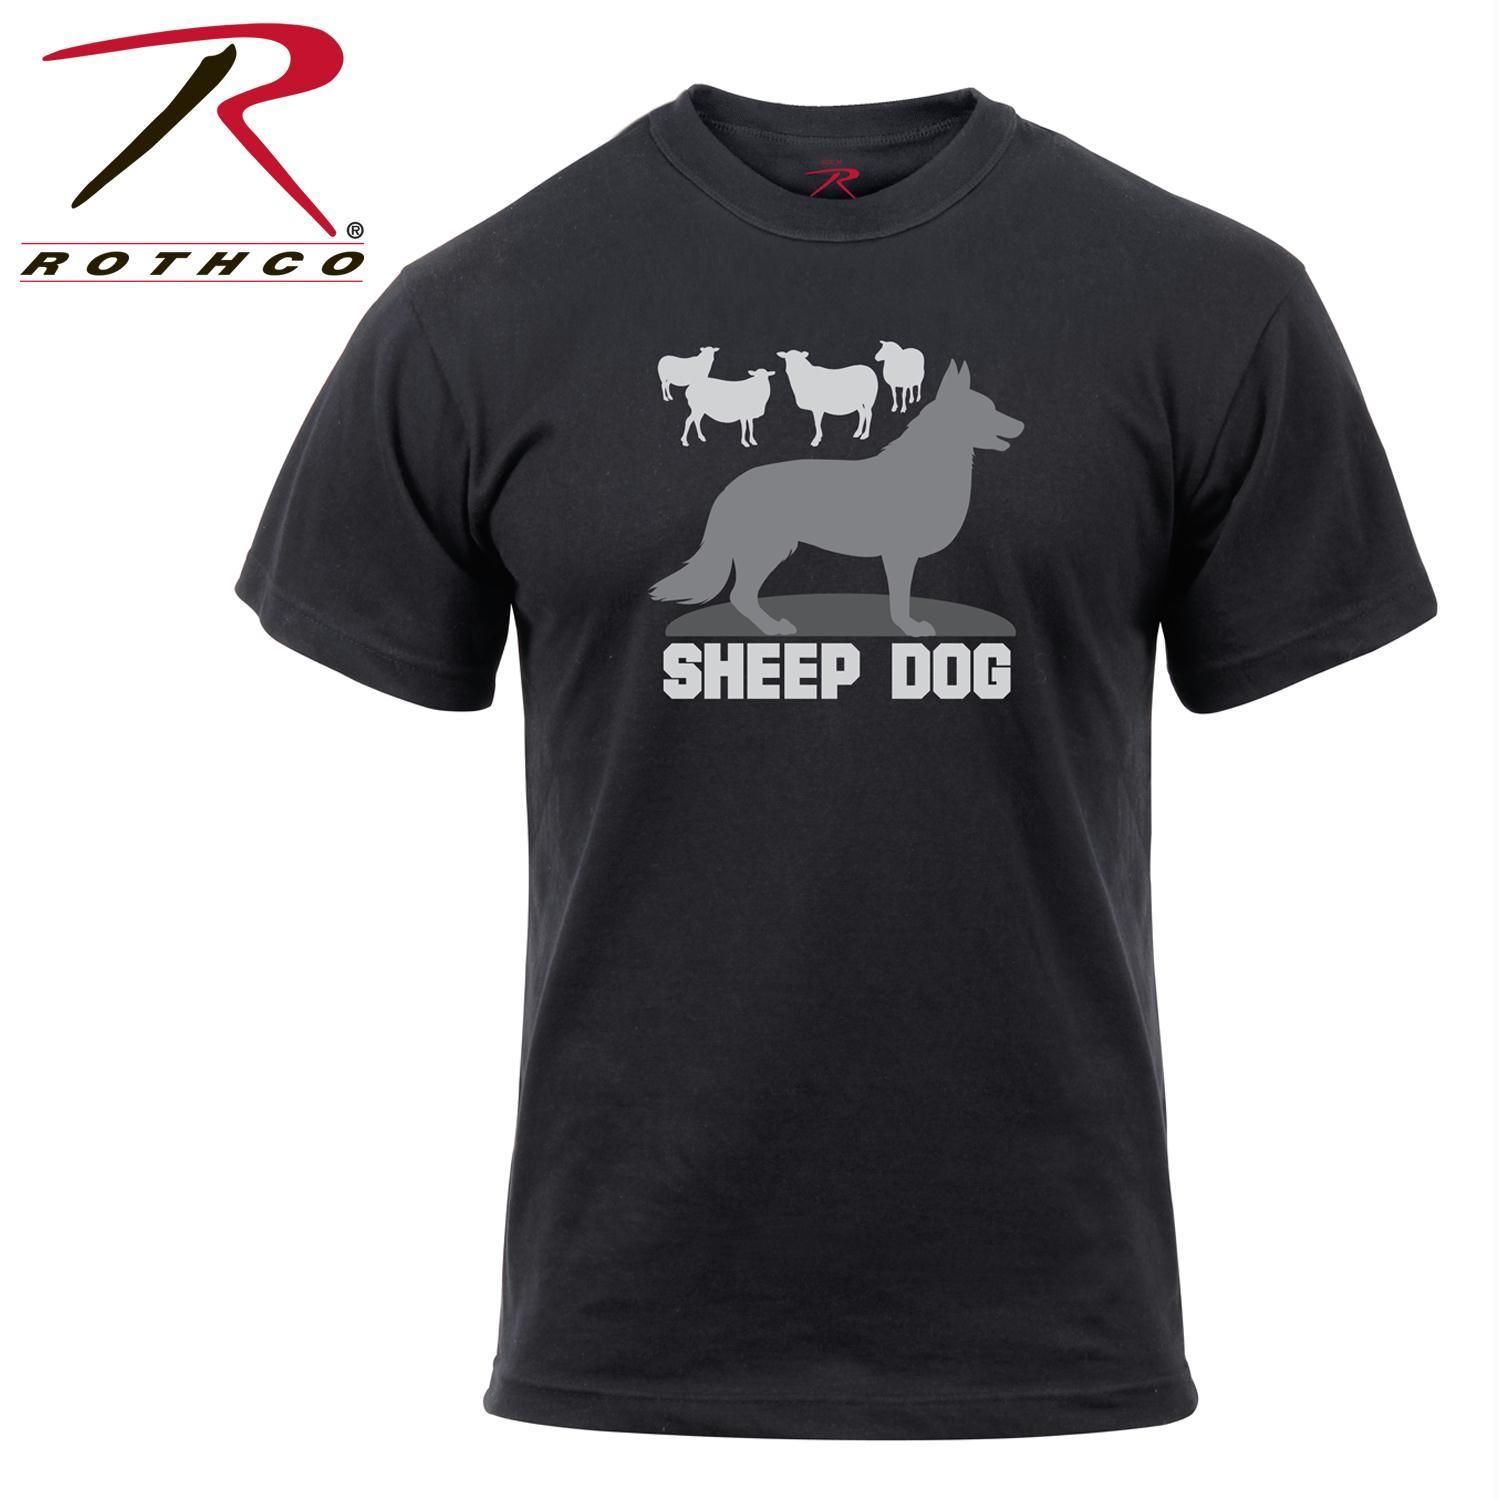 Rothco Sheep Dog T-Shirt  738ec834511